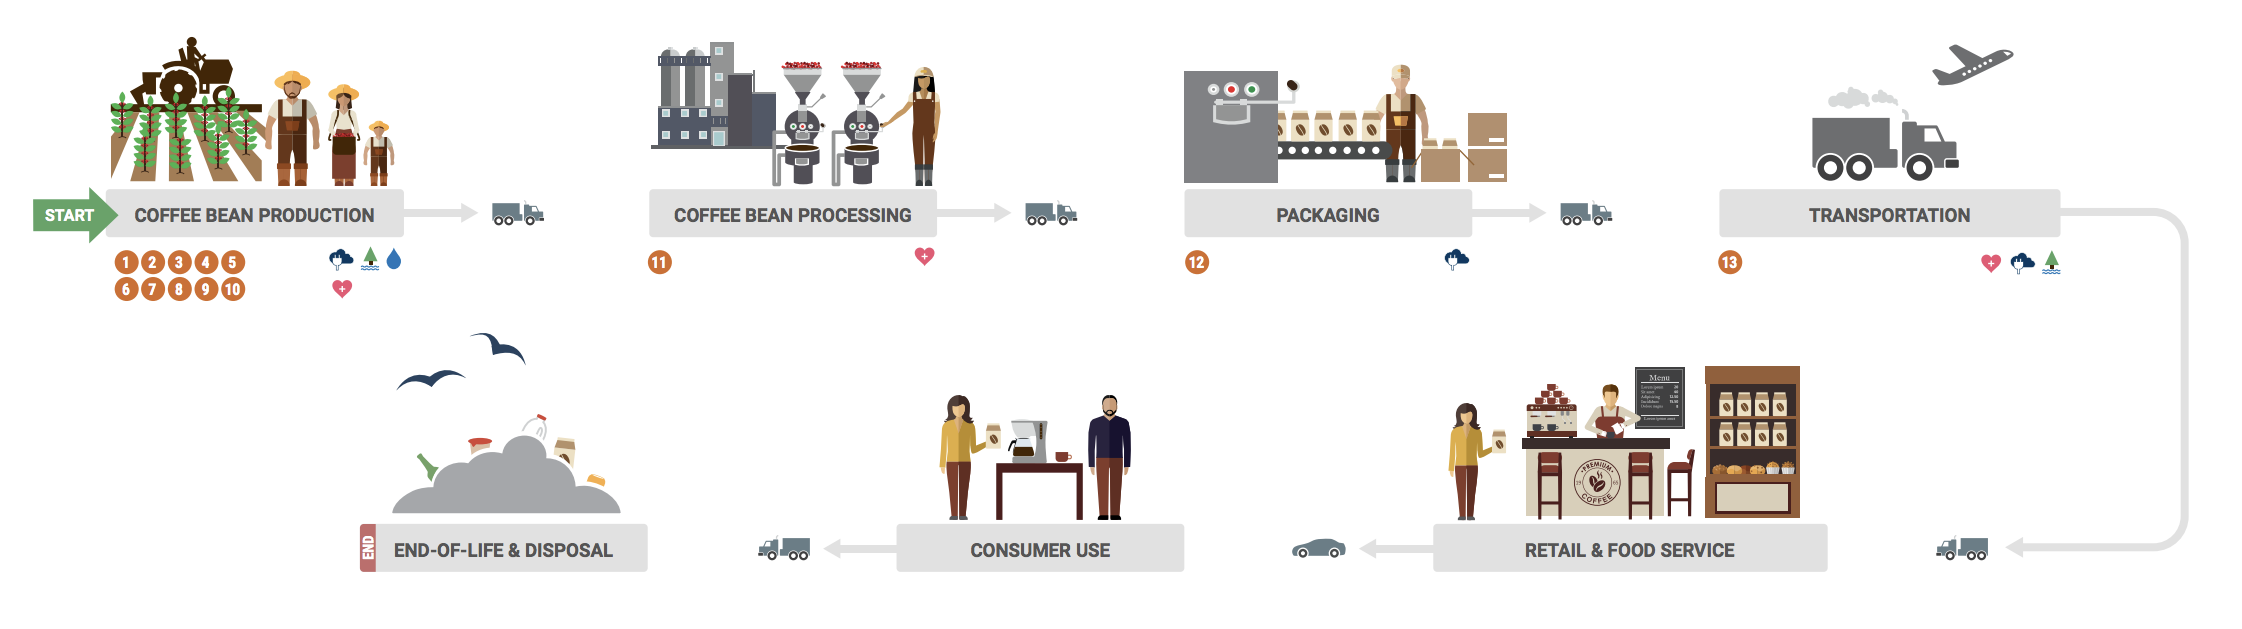 Coffee supply chain diagram published by The Sustainability Consortium™